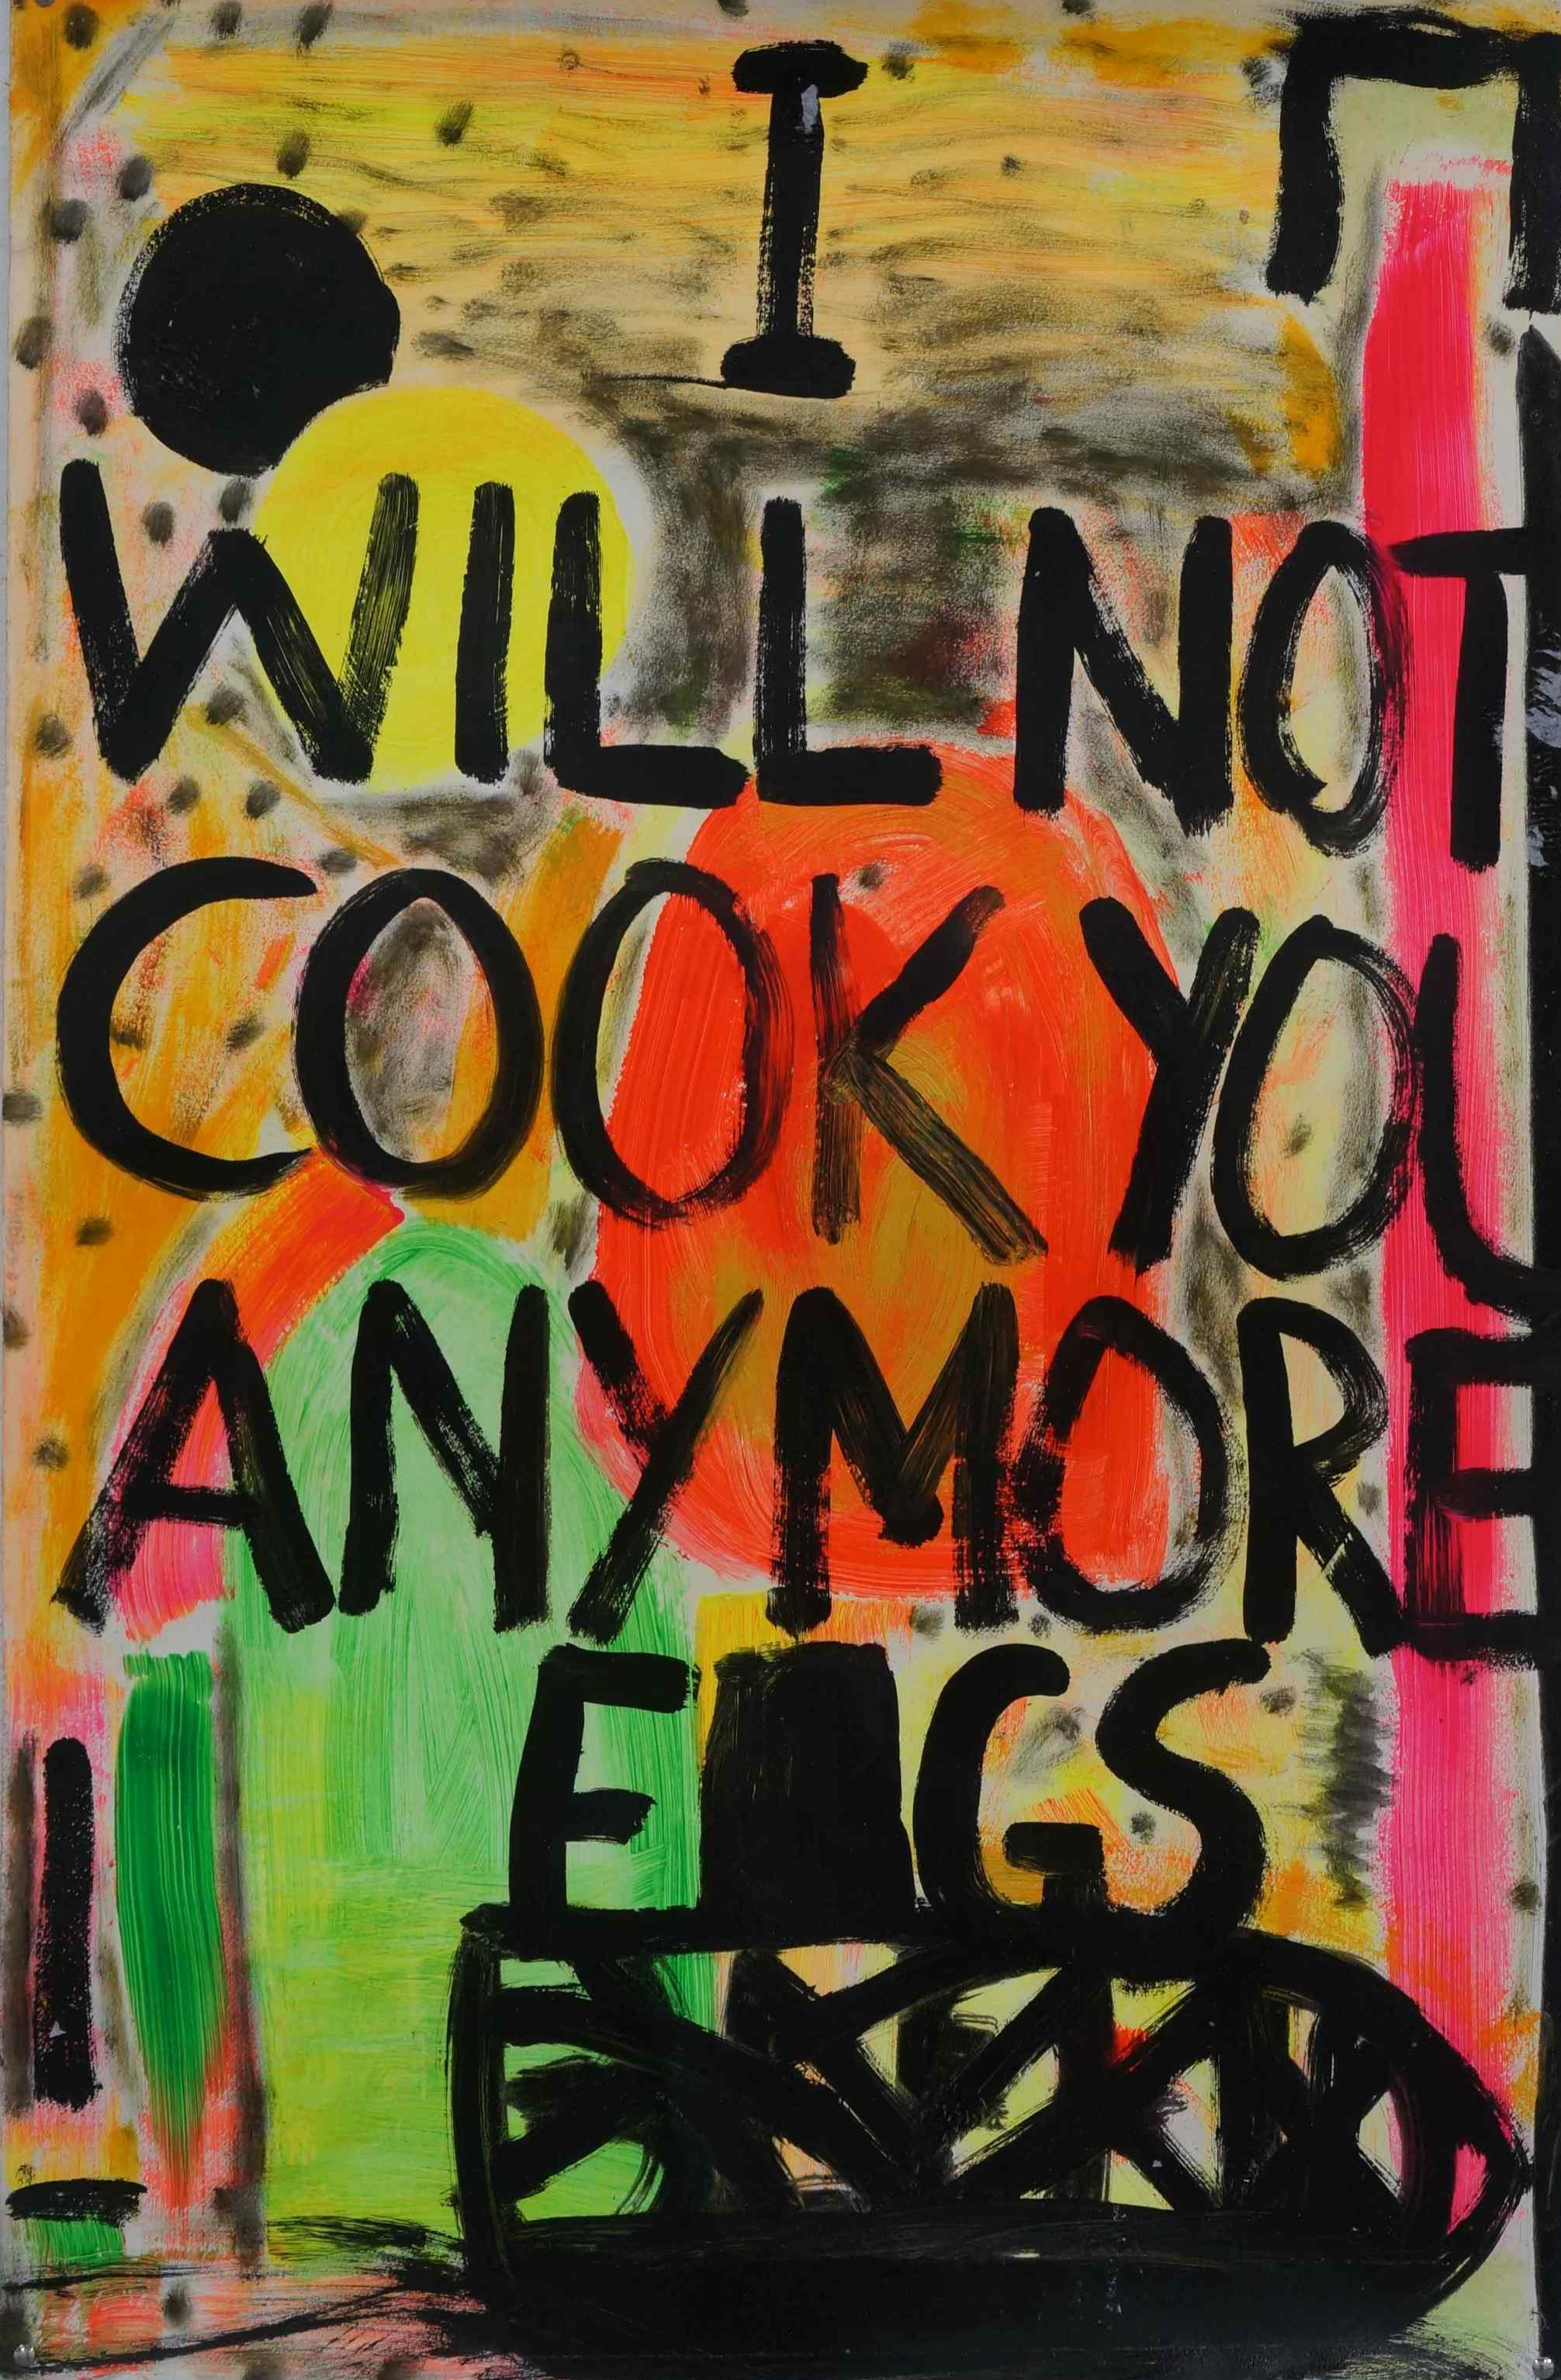 I will not cook  acrylic and oil on Magnani paper  76 x 110 cm